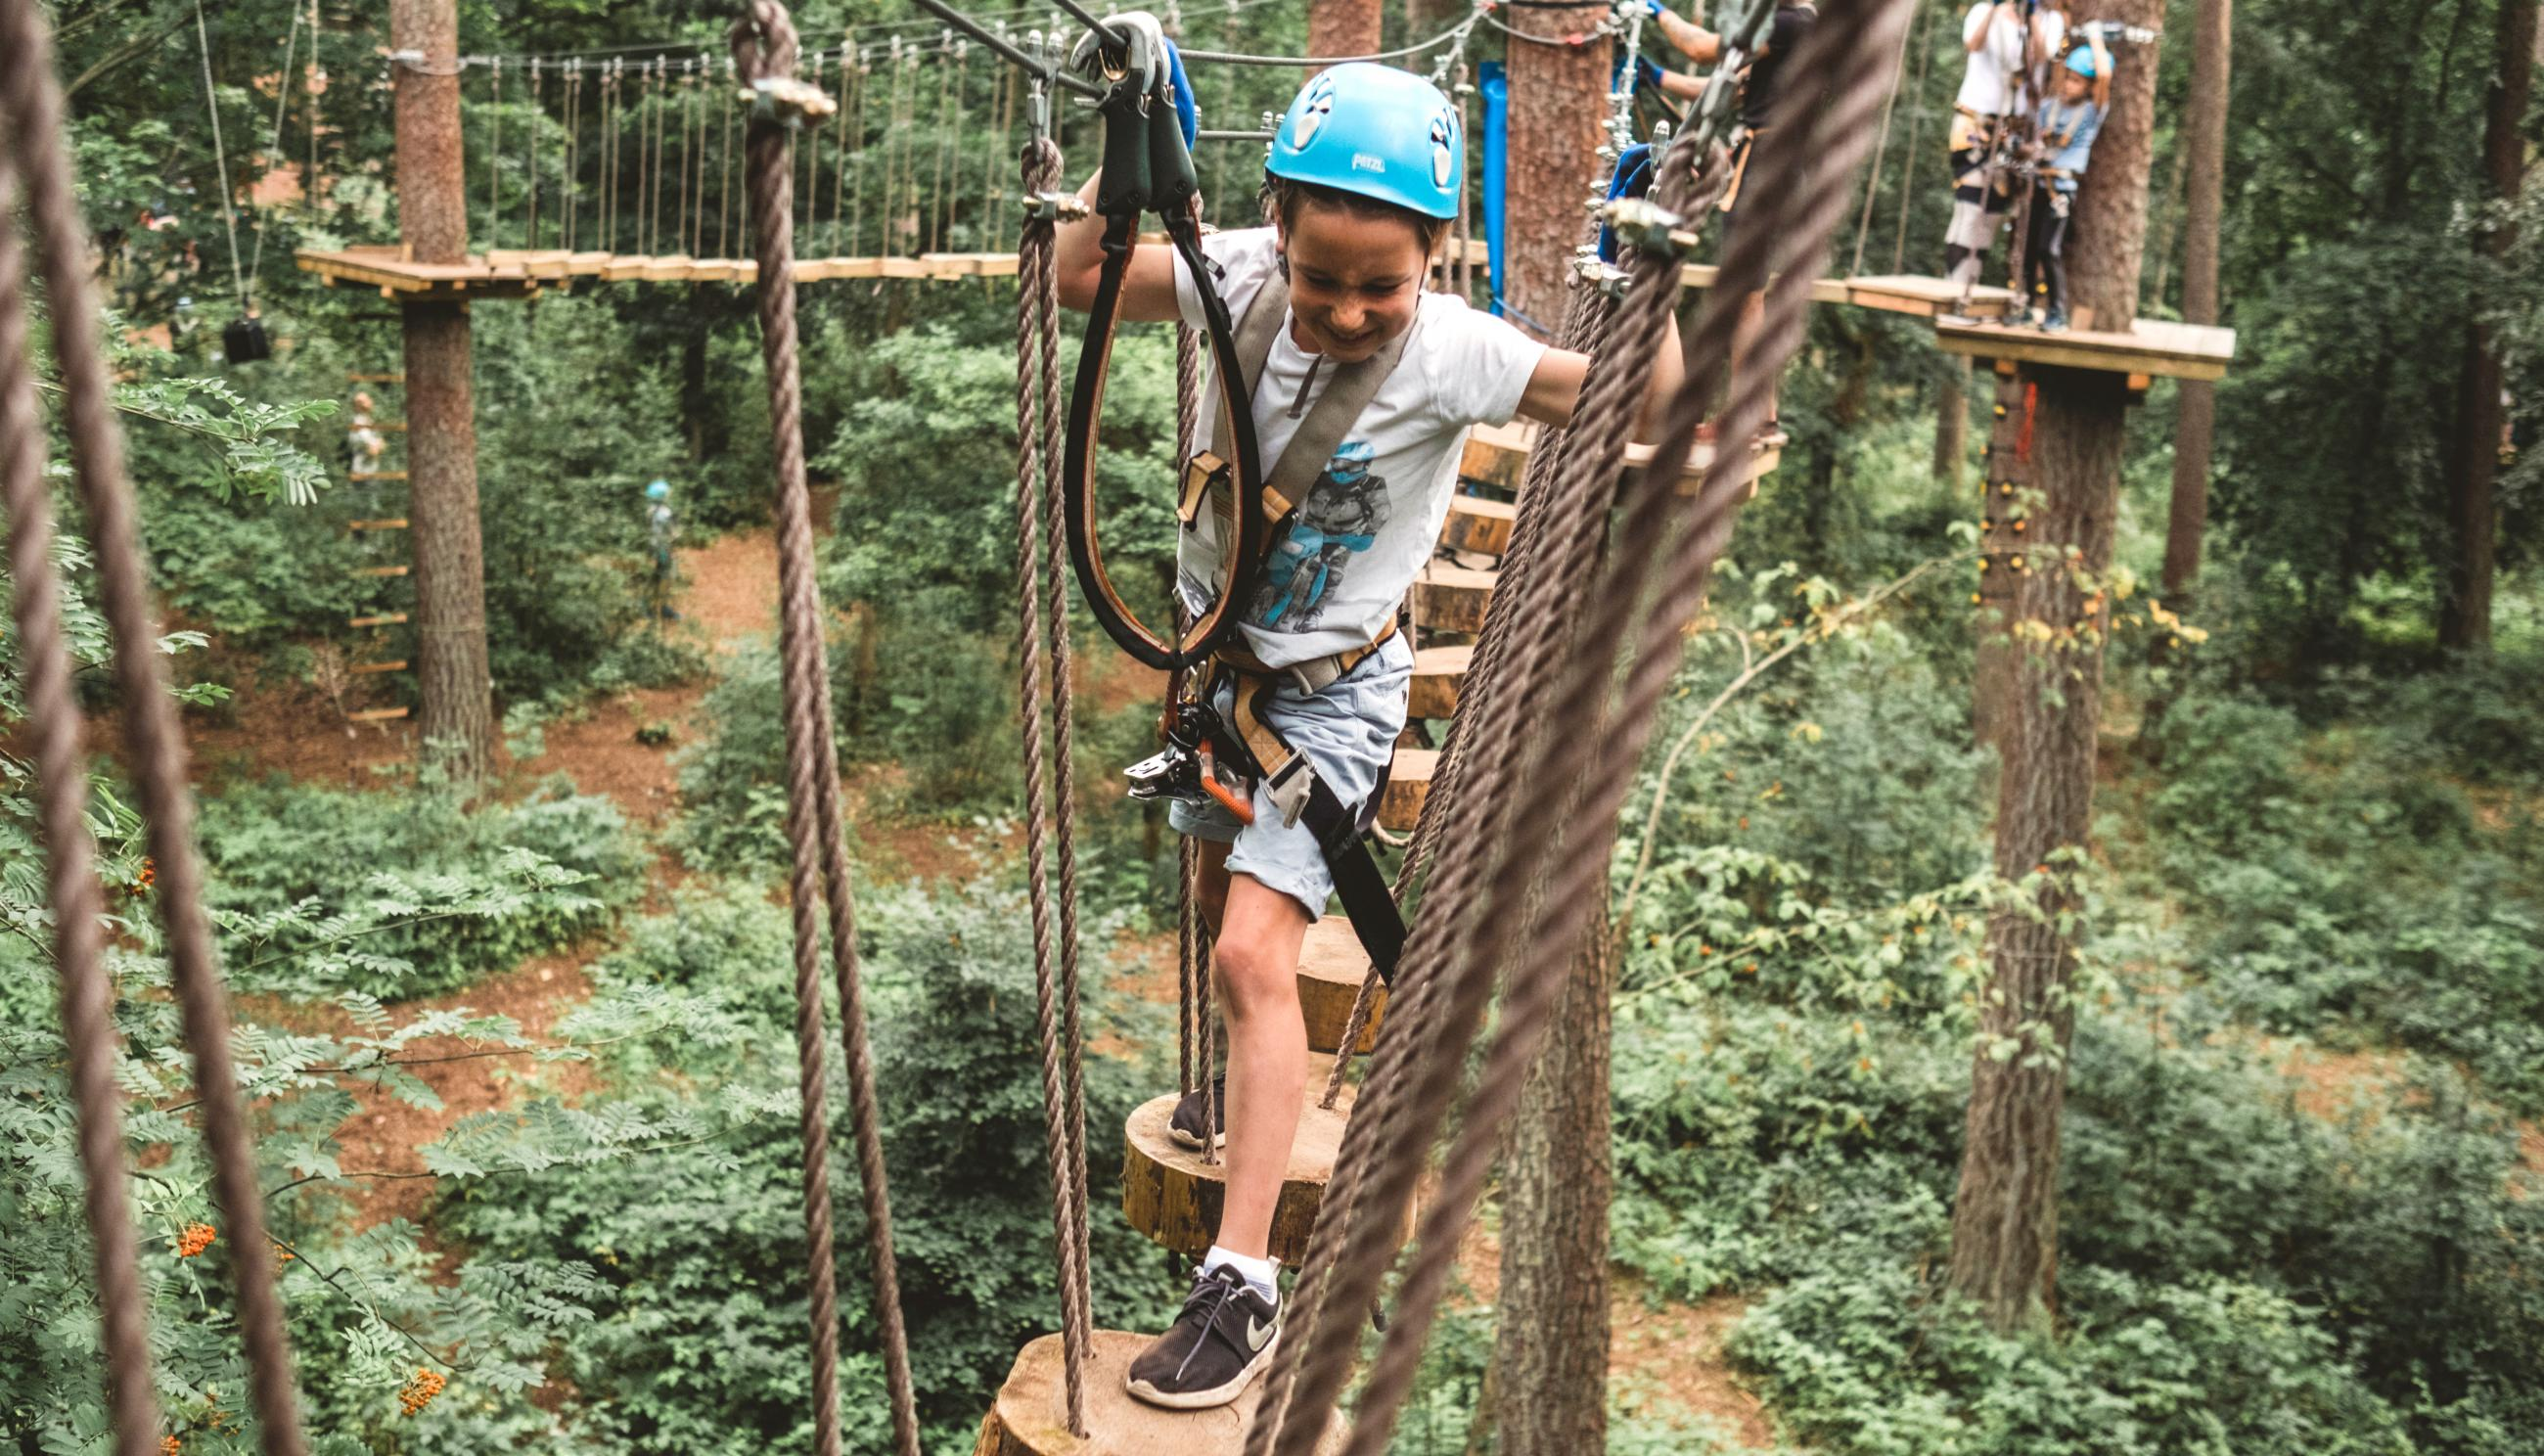 Child with helmet climbing in treetops at upzone